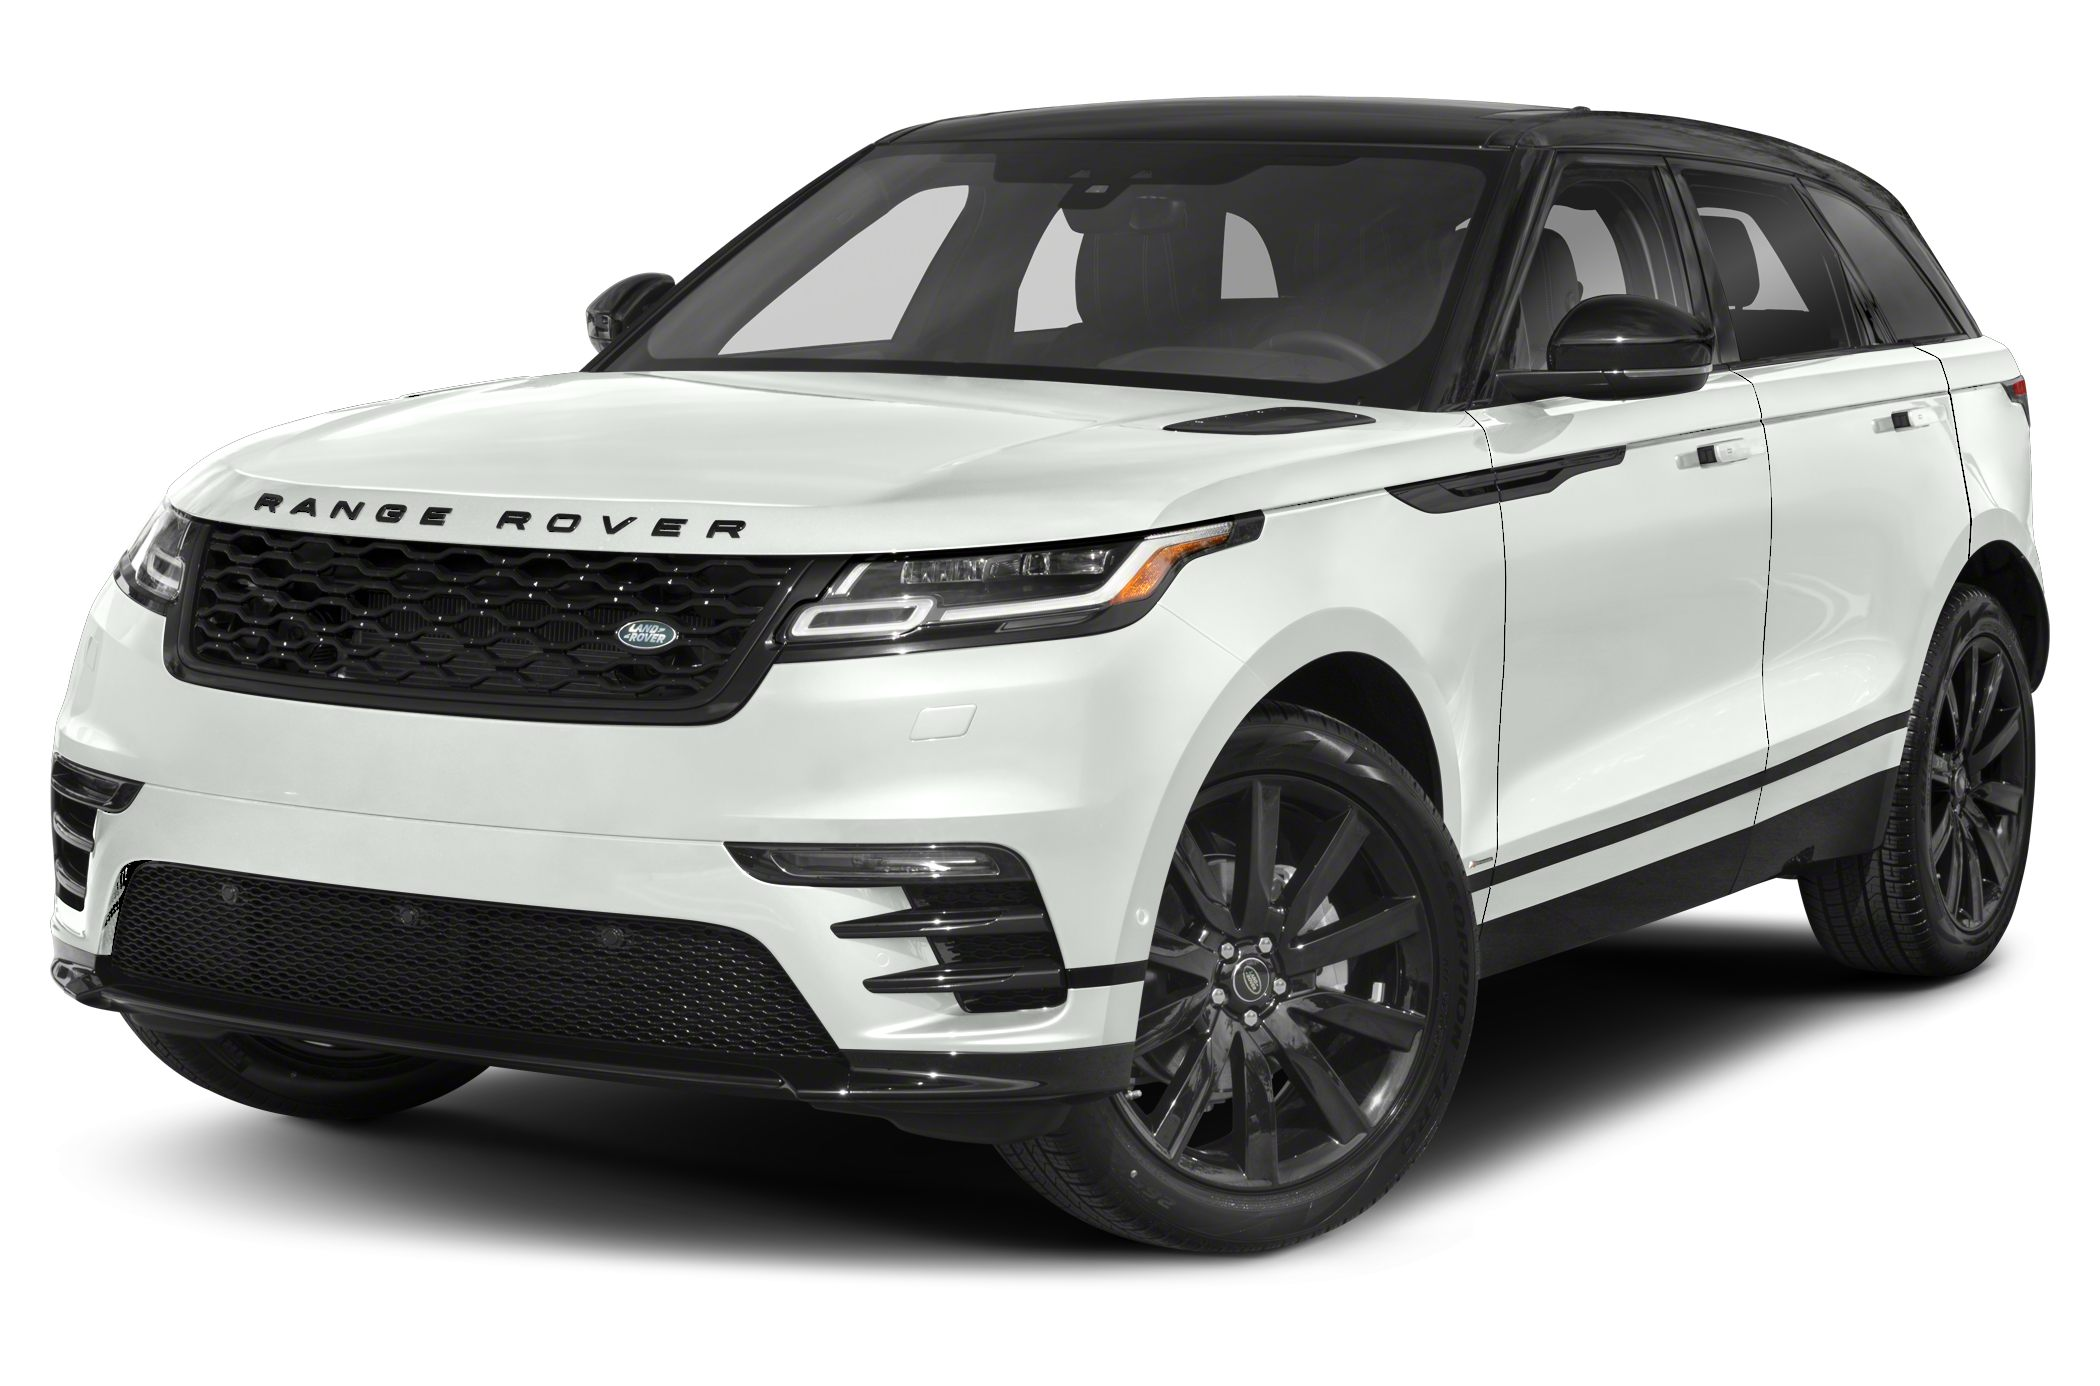 2018 range rover velar drivers 39 notes don 39 t worry we 39 re in no hurry autoblog. Black Bedroom Furniture Sets. Home Design Ideas